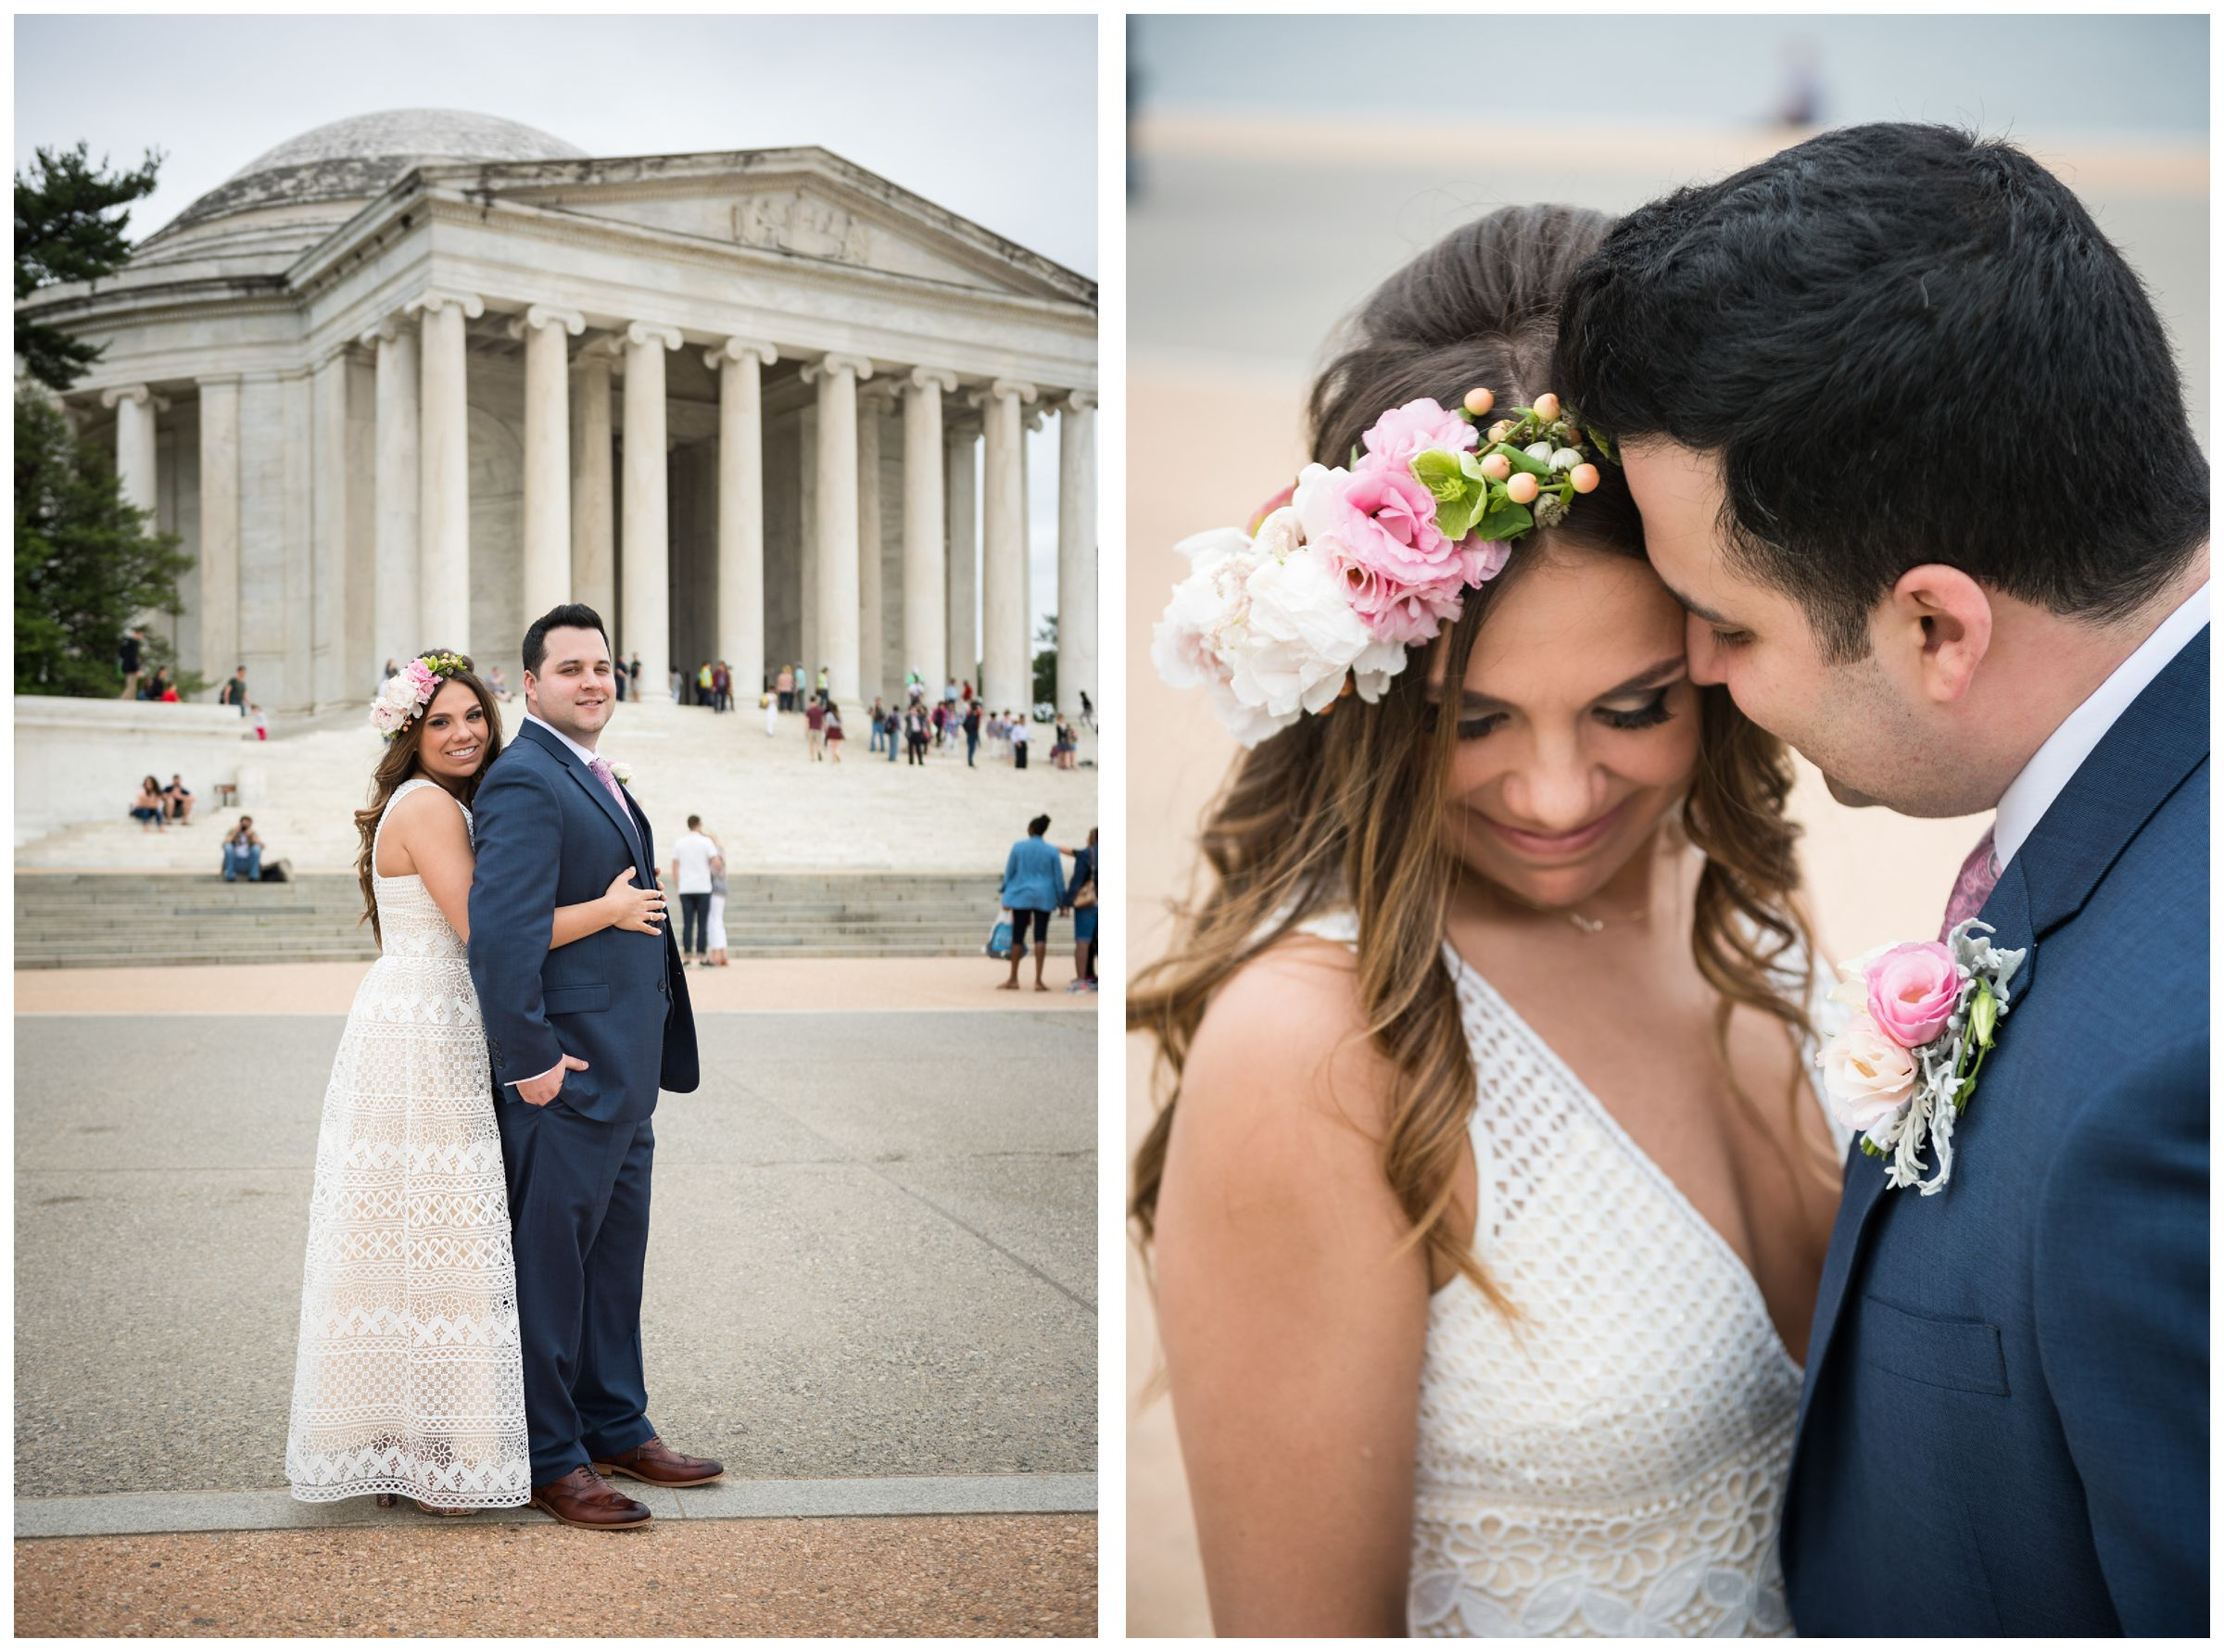 bride with flower crown and groom portraits at the Jefferson Memorial during DC monument wedding day in Washington